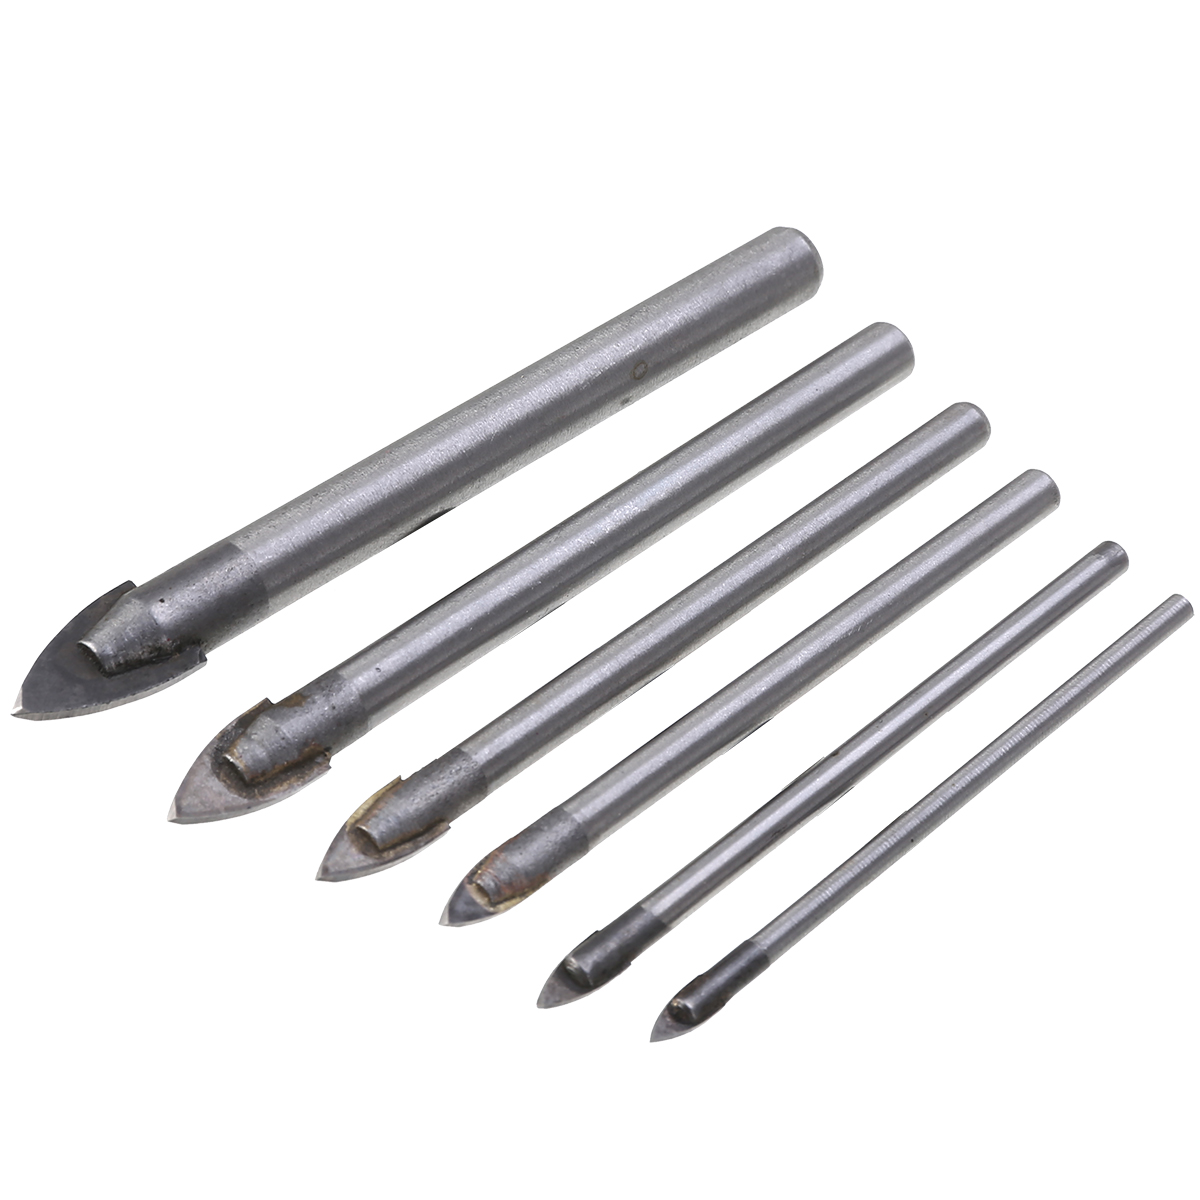 4PC TILE GLASS CERAMIC MIRROR TUNGSTEN CARBIDE DRILL BIT SET 3mm 5mm 6mm 8mm NEW